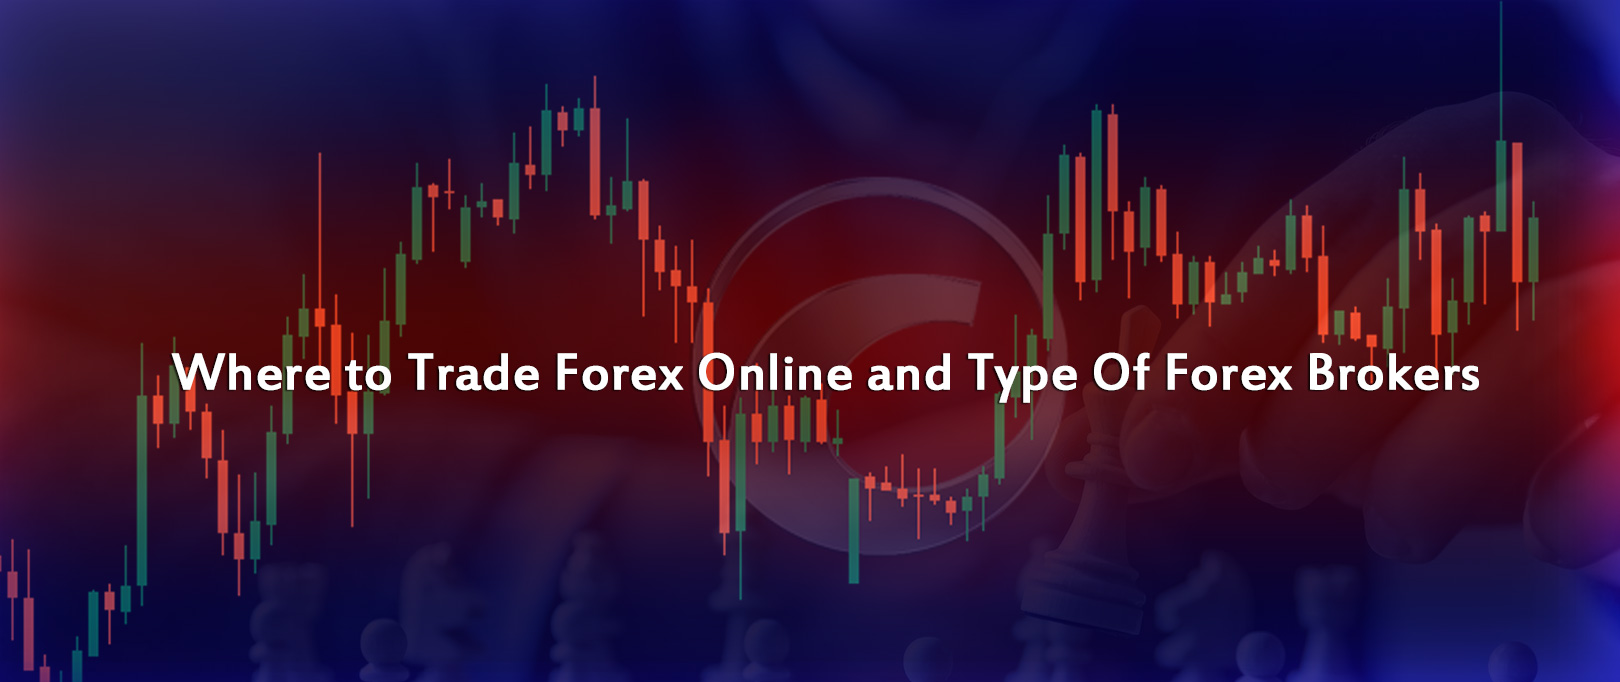 Where-To-Trade-Forex-Online-And-Type-Of-Forex-Brokers-in-Sri-Lanka-by-Prathilaba